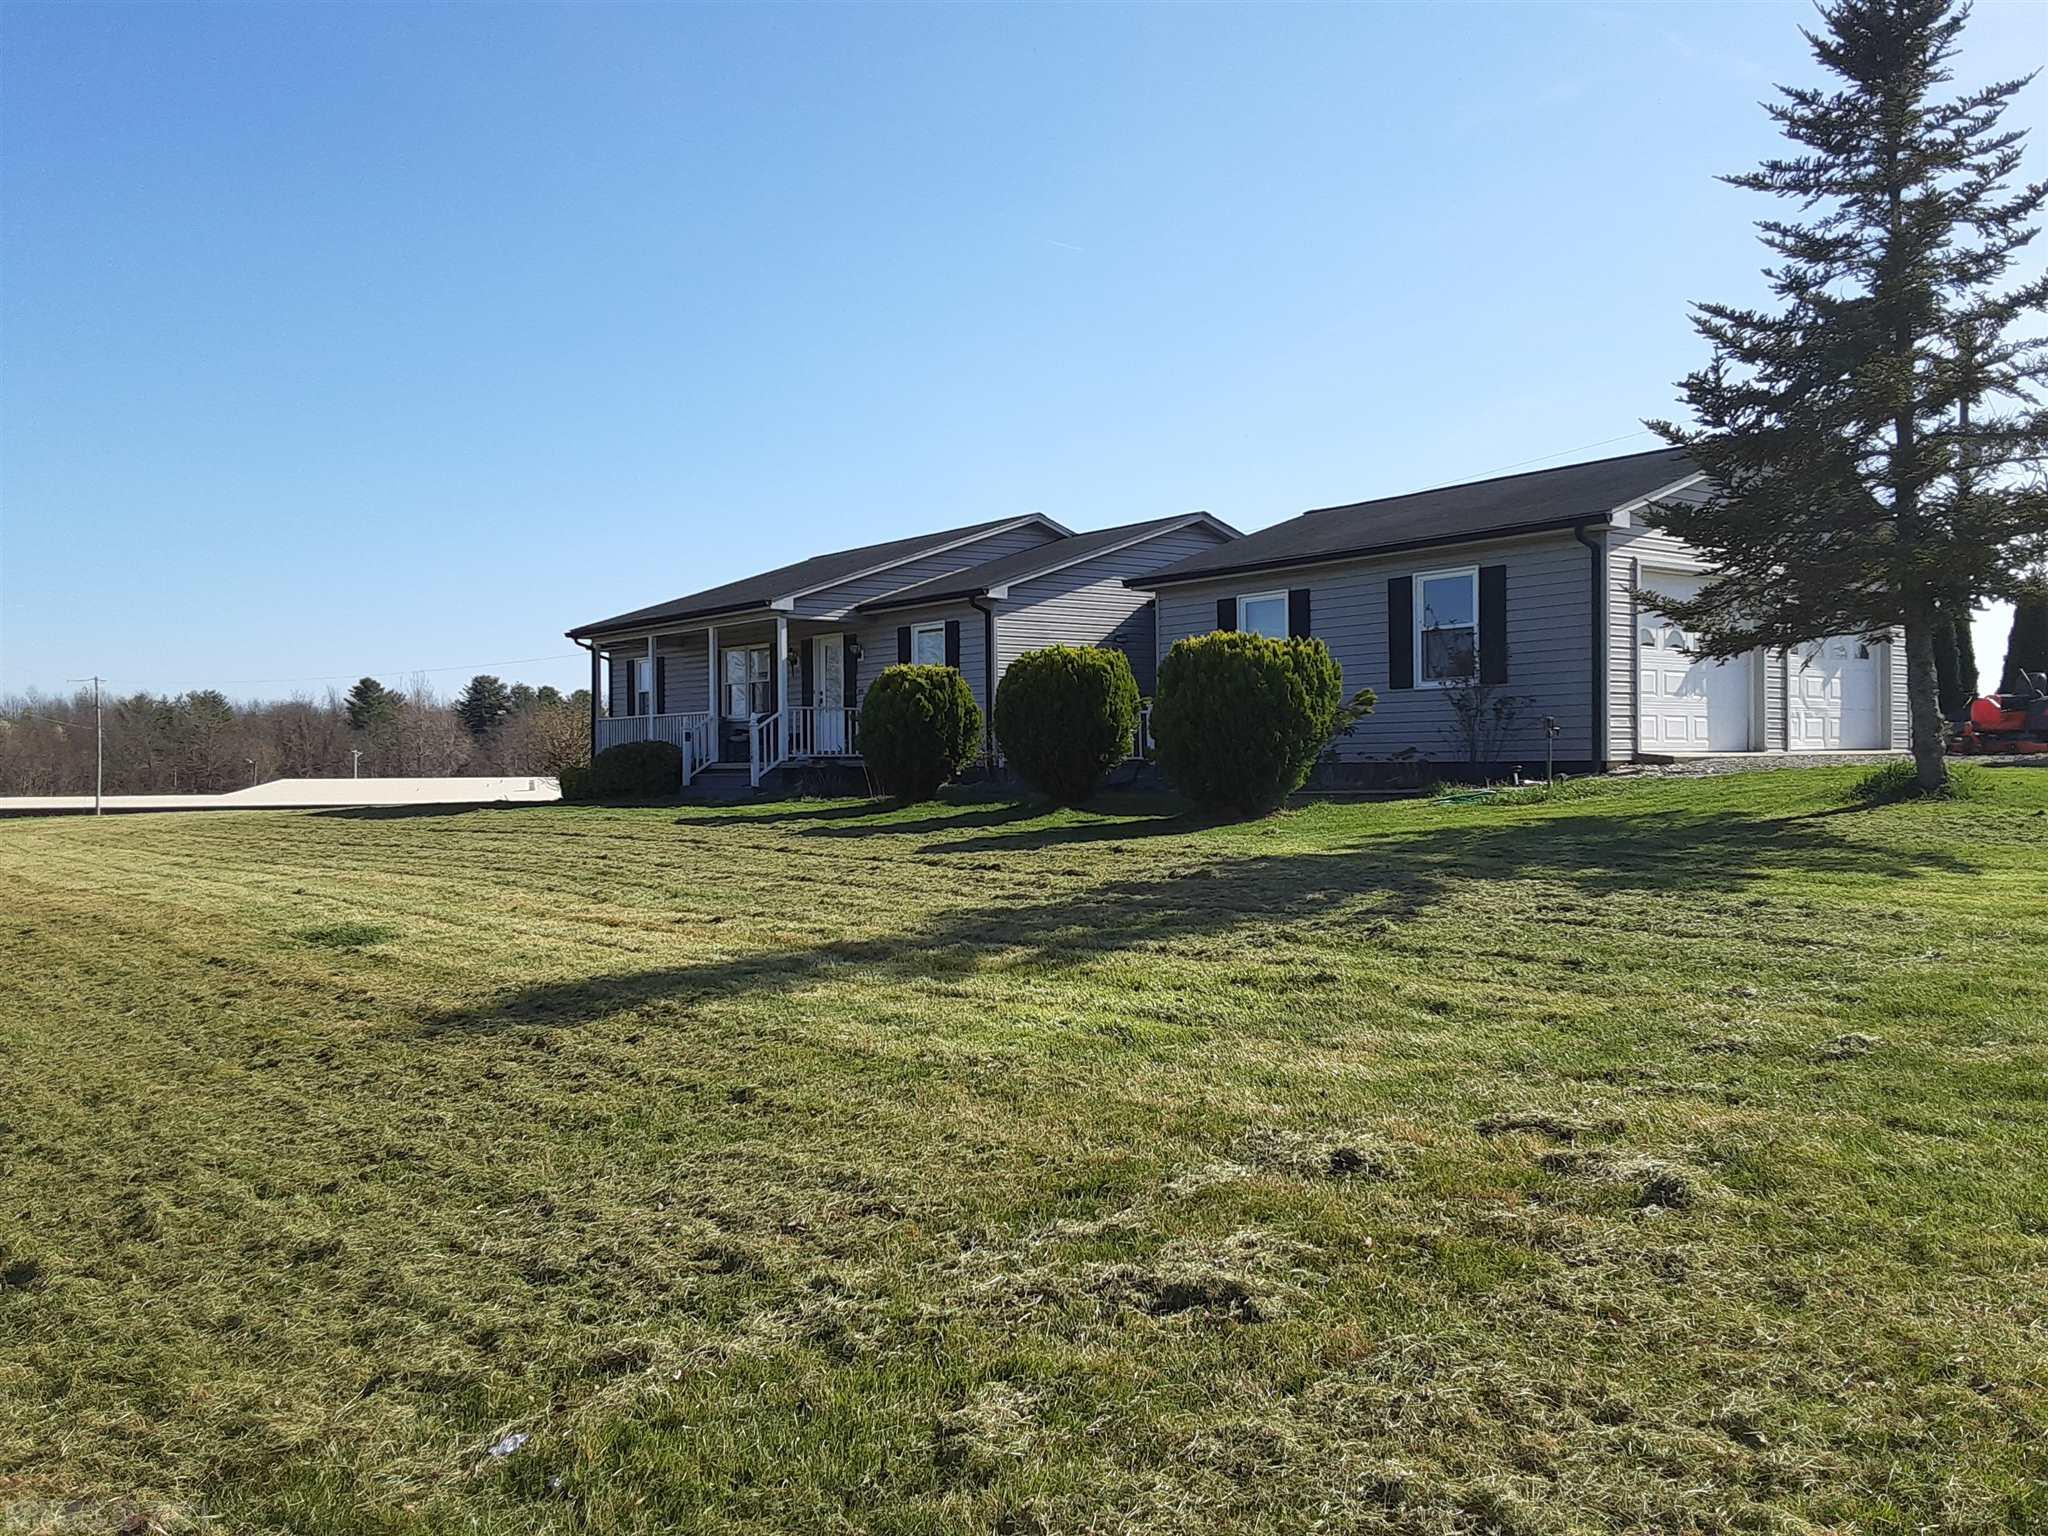 Come enjoy this large one level home with 2 car detached garage, within walking distance of Pulaski County High School. This home, built in 2003, offers 3 bedrooms, and 2 baths on a large 1.81 acre lot. The home has a tremendous back deck, excellent for entertaining or enjoying the evening sun.  The front porch is perfect for enjoying that first cup of coffee while watching the birds sing in the front yard. Mature trees include Willows, fruit trees, and more to go with the mature landscaping around the home. This home is perfect for everyone, as this is one level living at it's best. Will you be the next person to call this home yours?